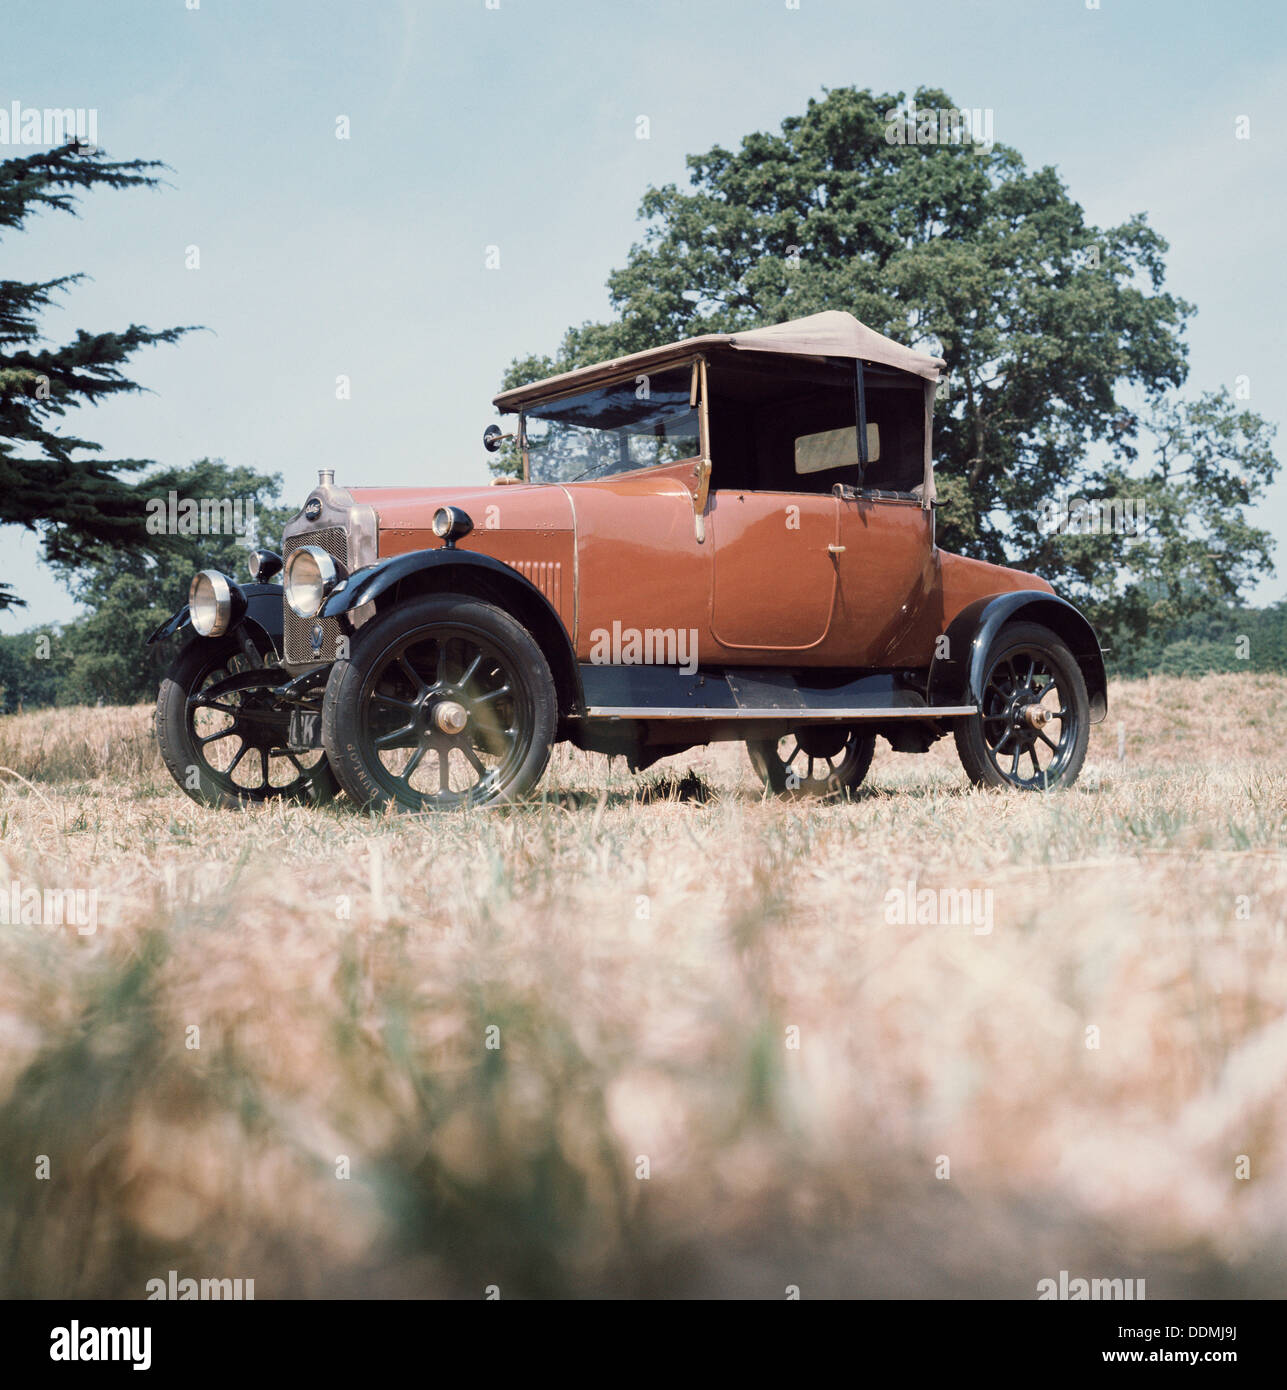 1923 Calcott 11.9hp Auto. Stockbild